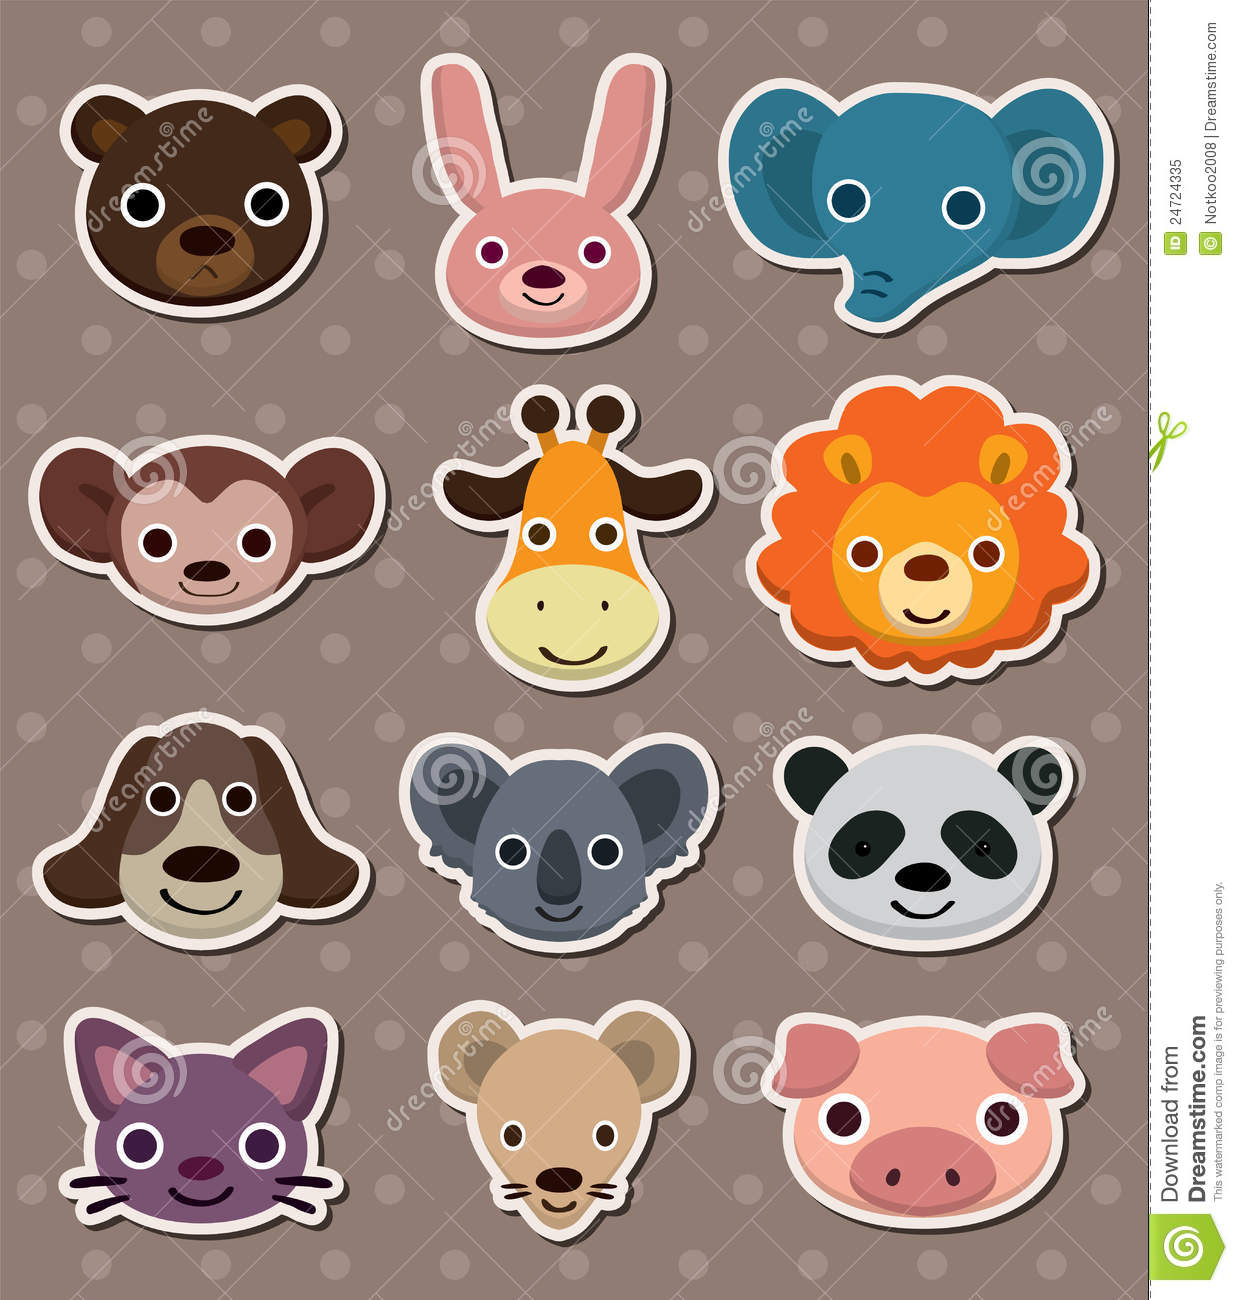 Animal Face Stickers Royalty Free Stock Photo Image 24724335